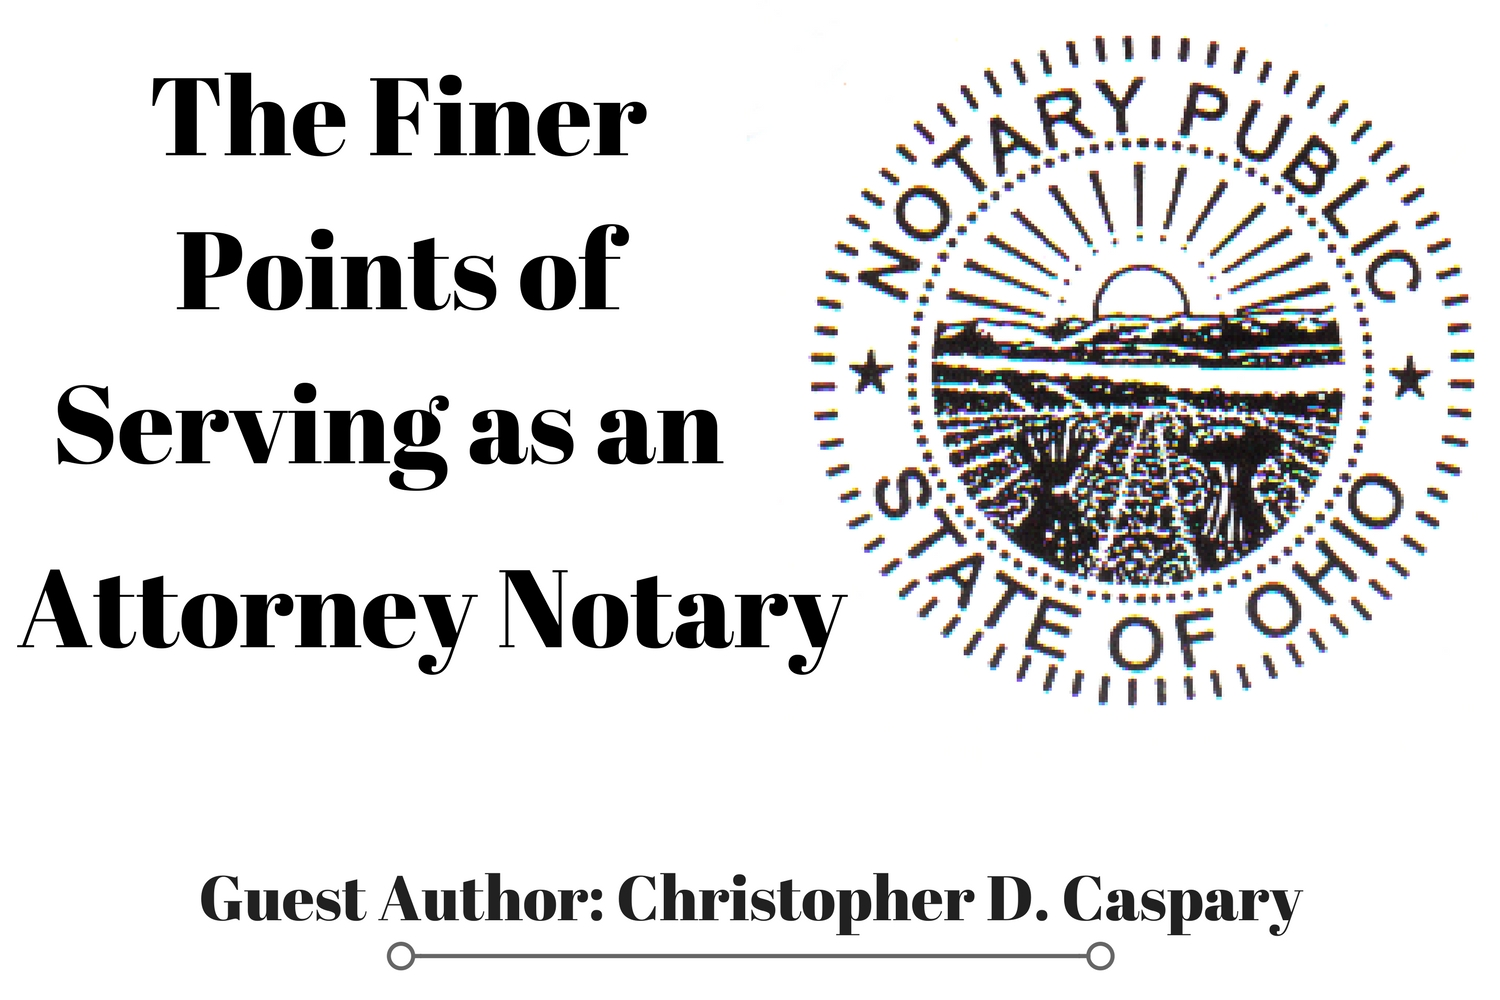 The Finer Points of Serving as an Attorney-Notary